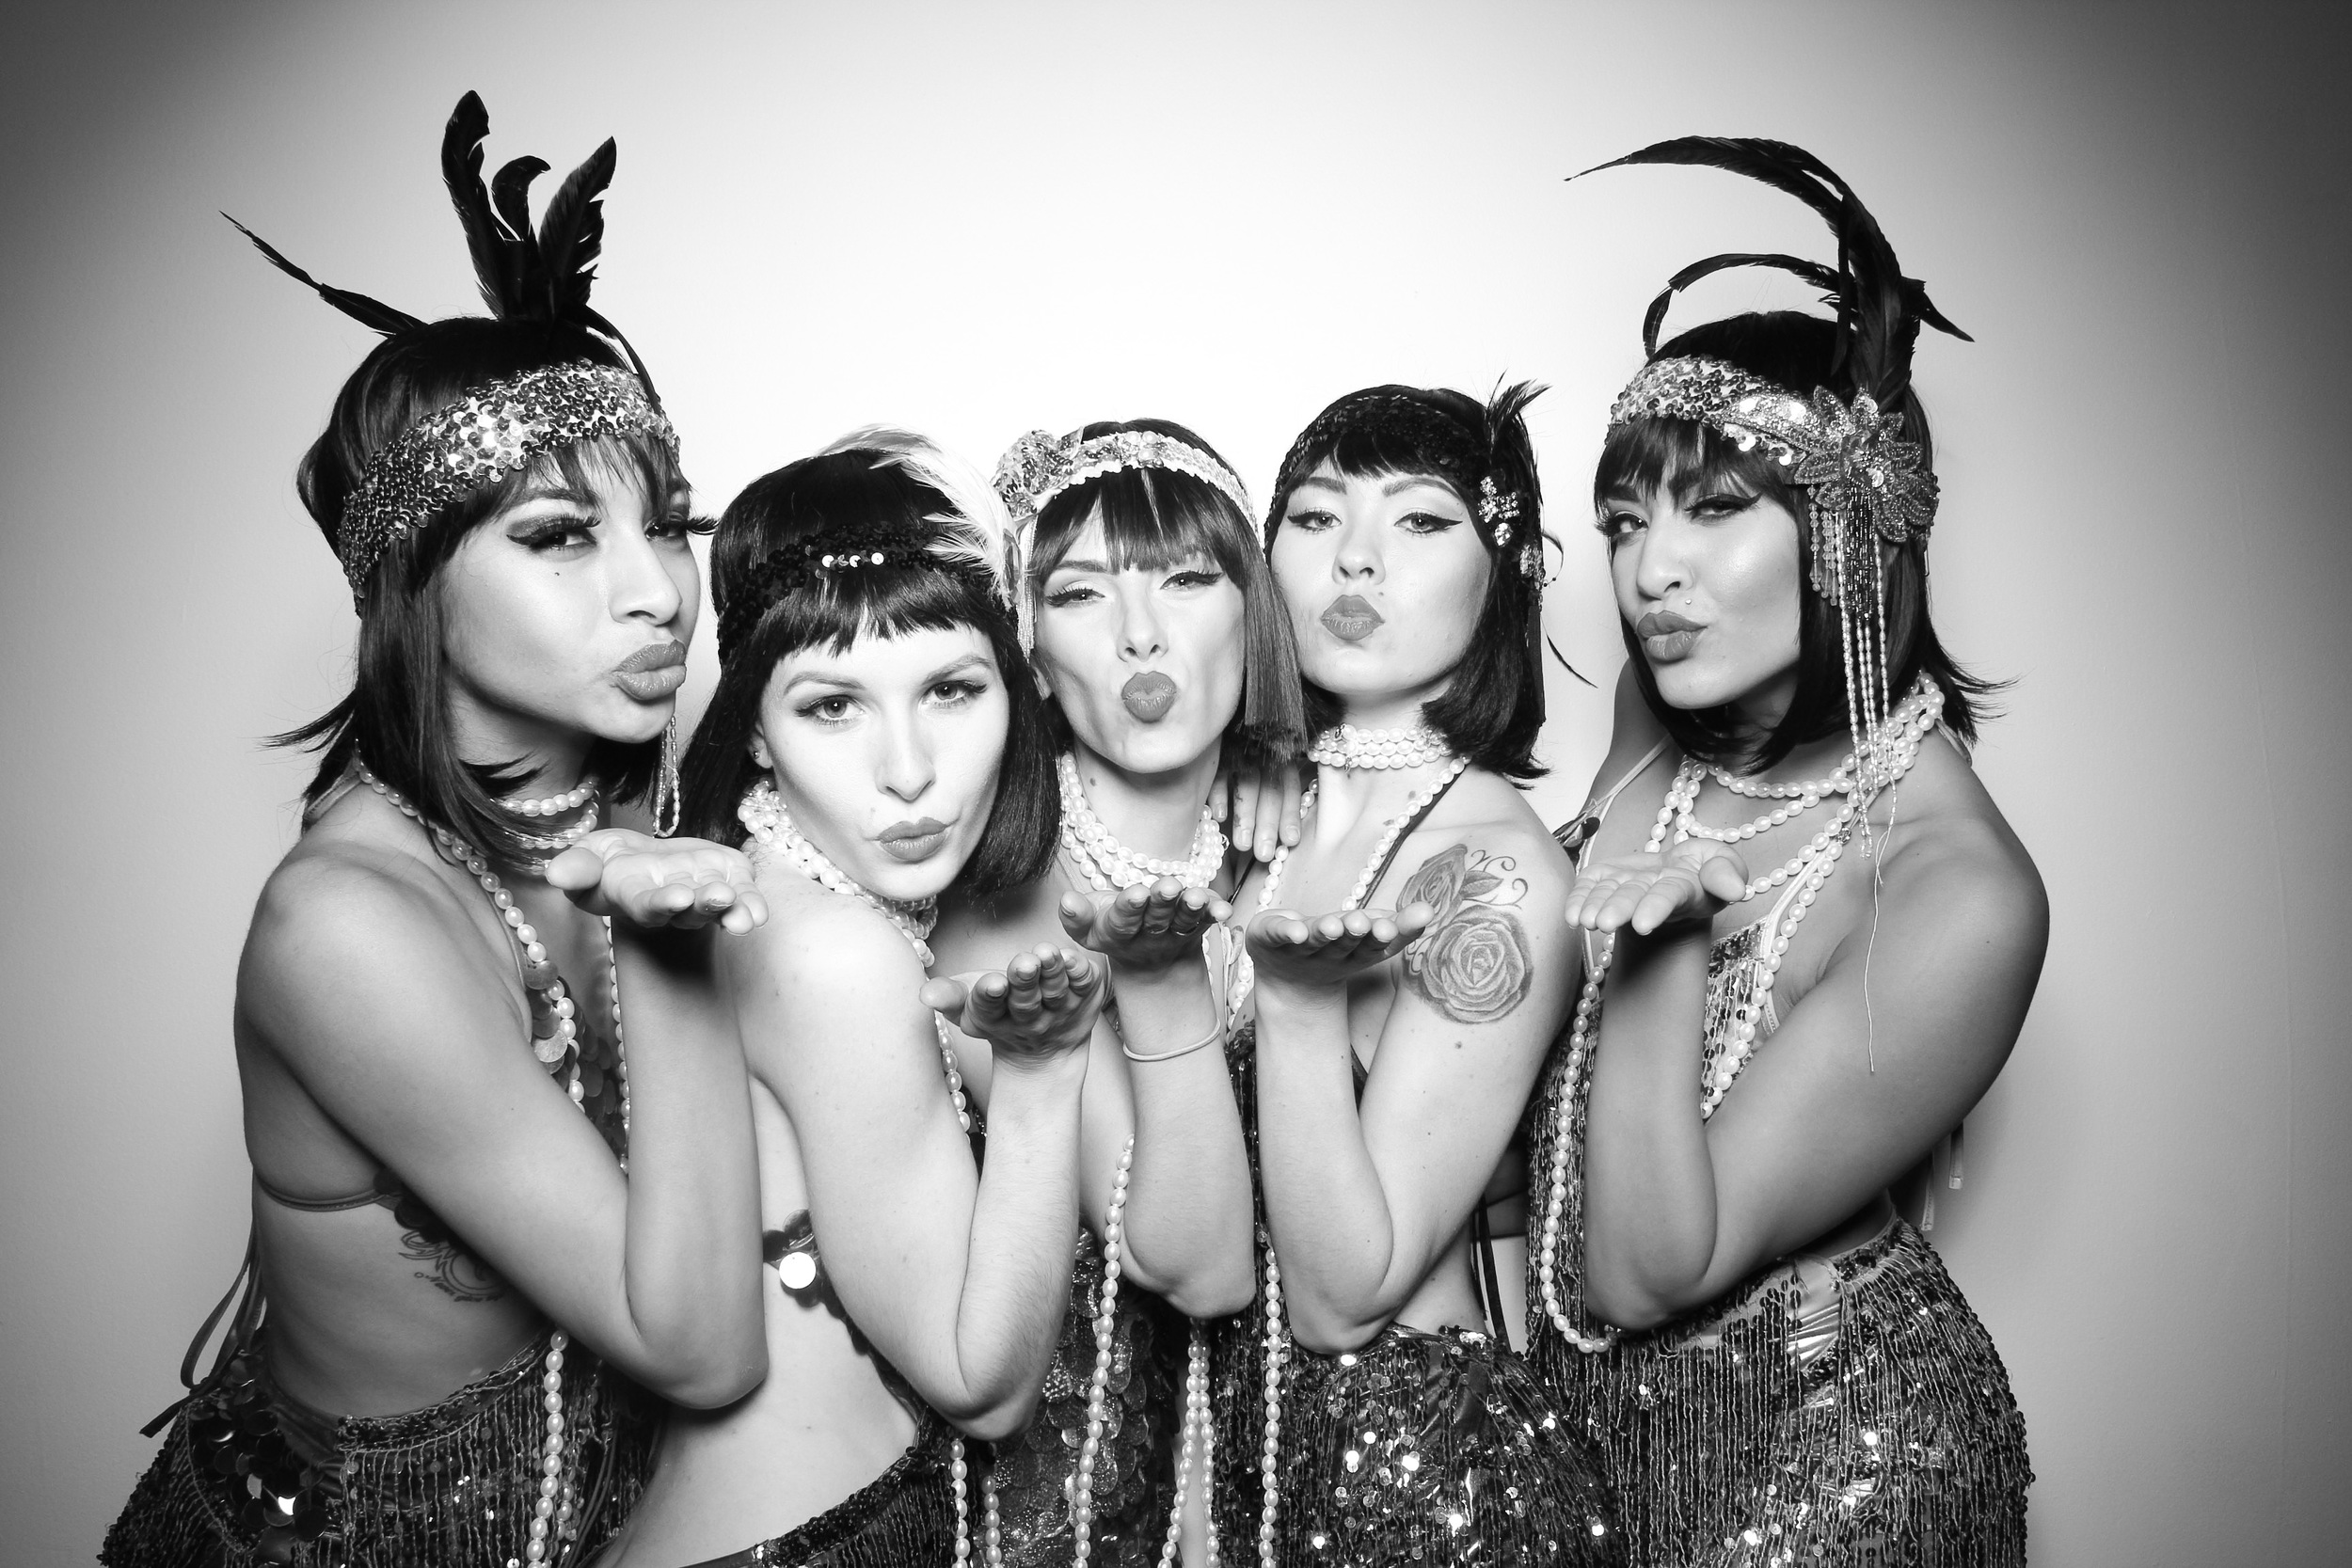 The Greaty Gatsby flapper girls looking good at Venue One!They werefrom Zhantra Entertainment Chicago.